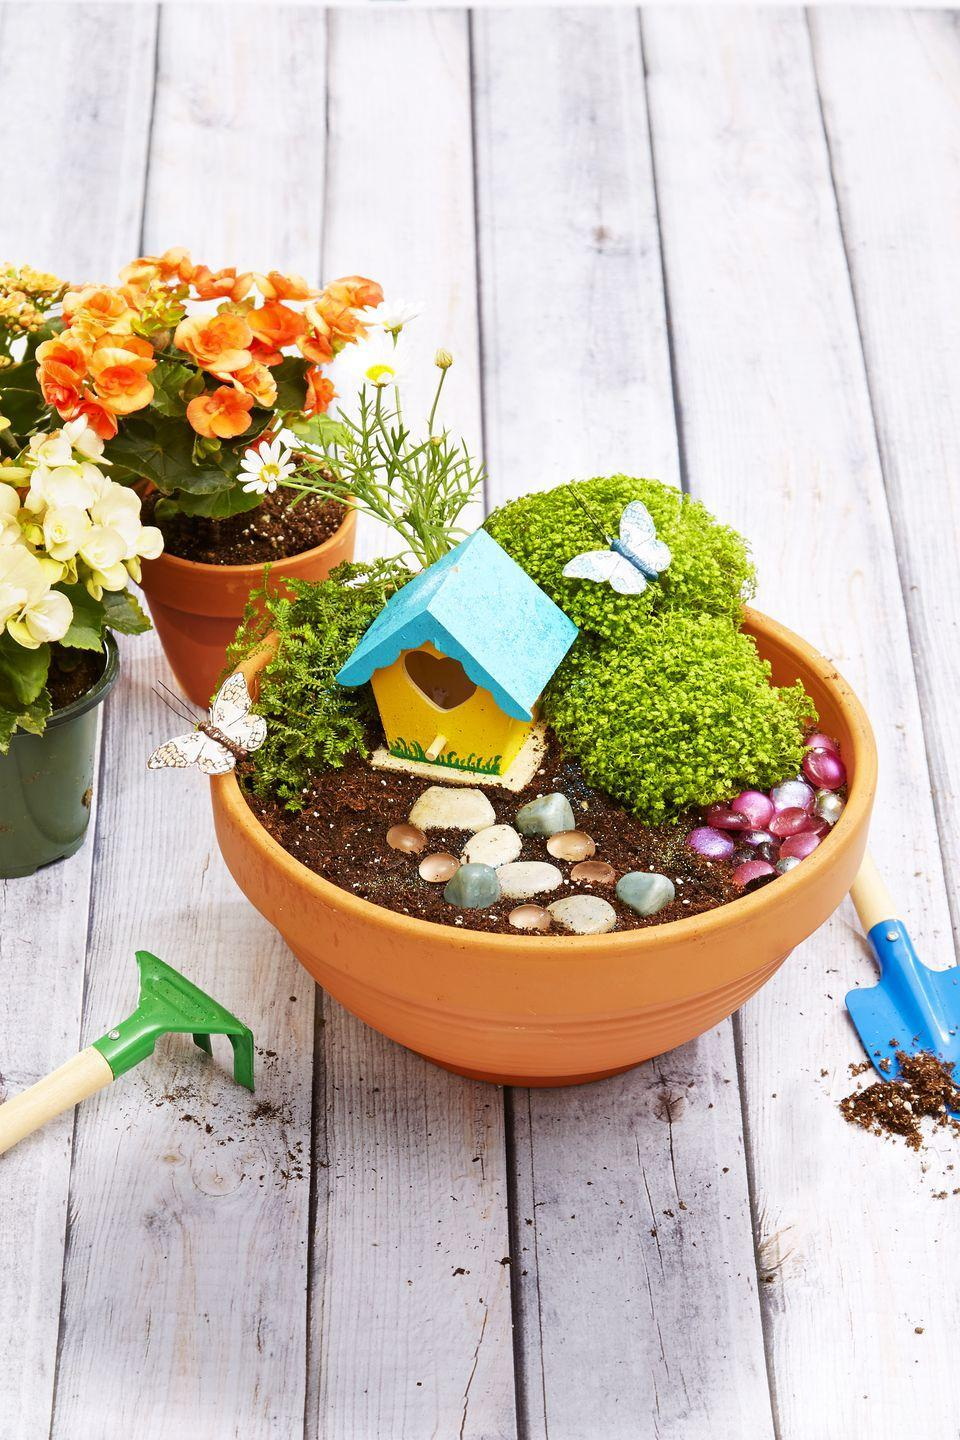 """<p>Think small — really small — with this adorable project. Outfitted with a mini birdhouse, rustic stones, and teeny-tiny accessories, this planter is the perfect thing to make with kids. </p><p><em><a href=""""https://www.goodhousekeeping.com/home/craft-ideas/a33567/fairy-garden-how-to/"""" rel=""""nofollow noopener"""" target=""""_blank"""" data-ylk=""""slk:Get the tutorial »"""" class=""""link rapid-noclick-resp"""">Get the tutorial »</a></em></p>"""